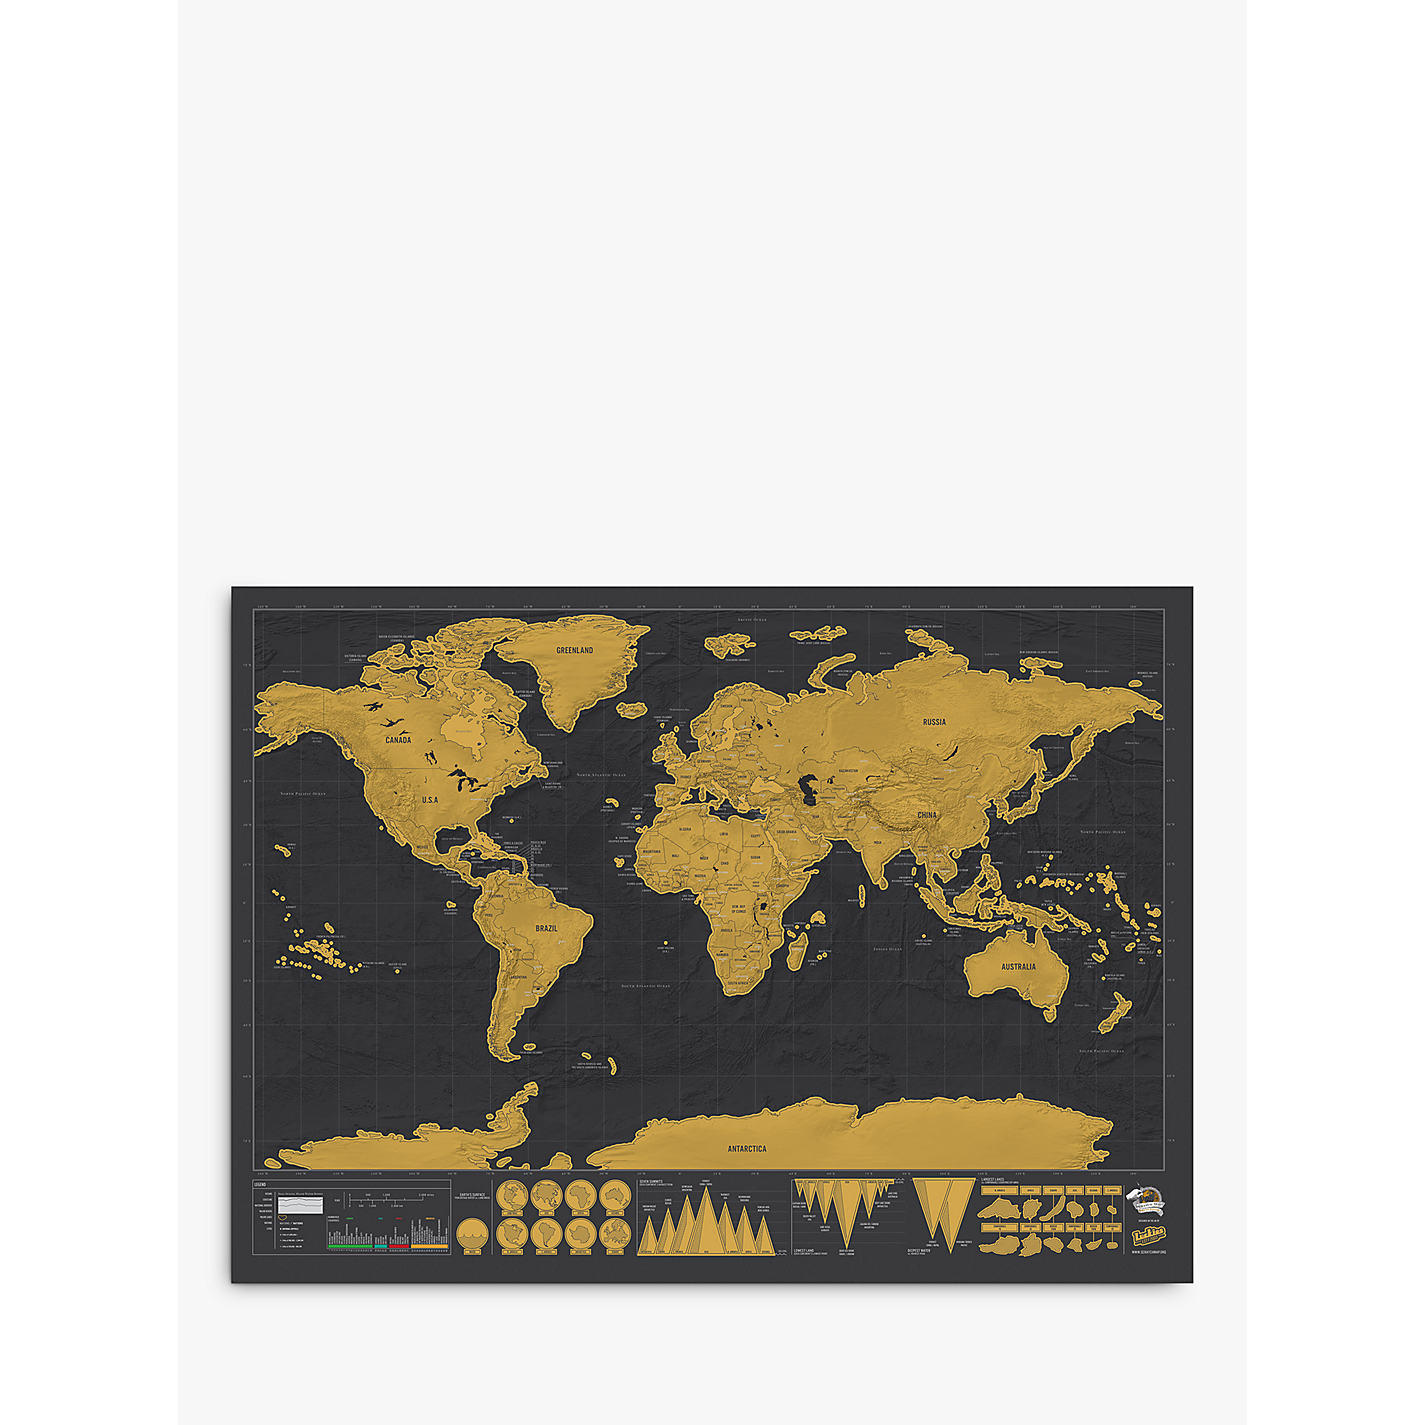 Buy luckies deluxe scratch map h59 x w82cm john lewis buy luckies deluxe scratch map h59 x w82cm online at johnlewis gumiabroncs Choice Image